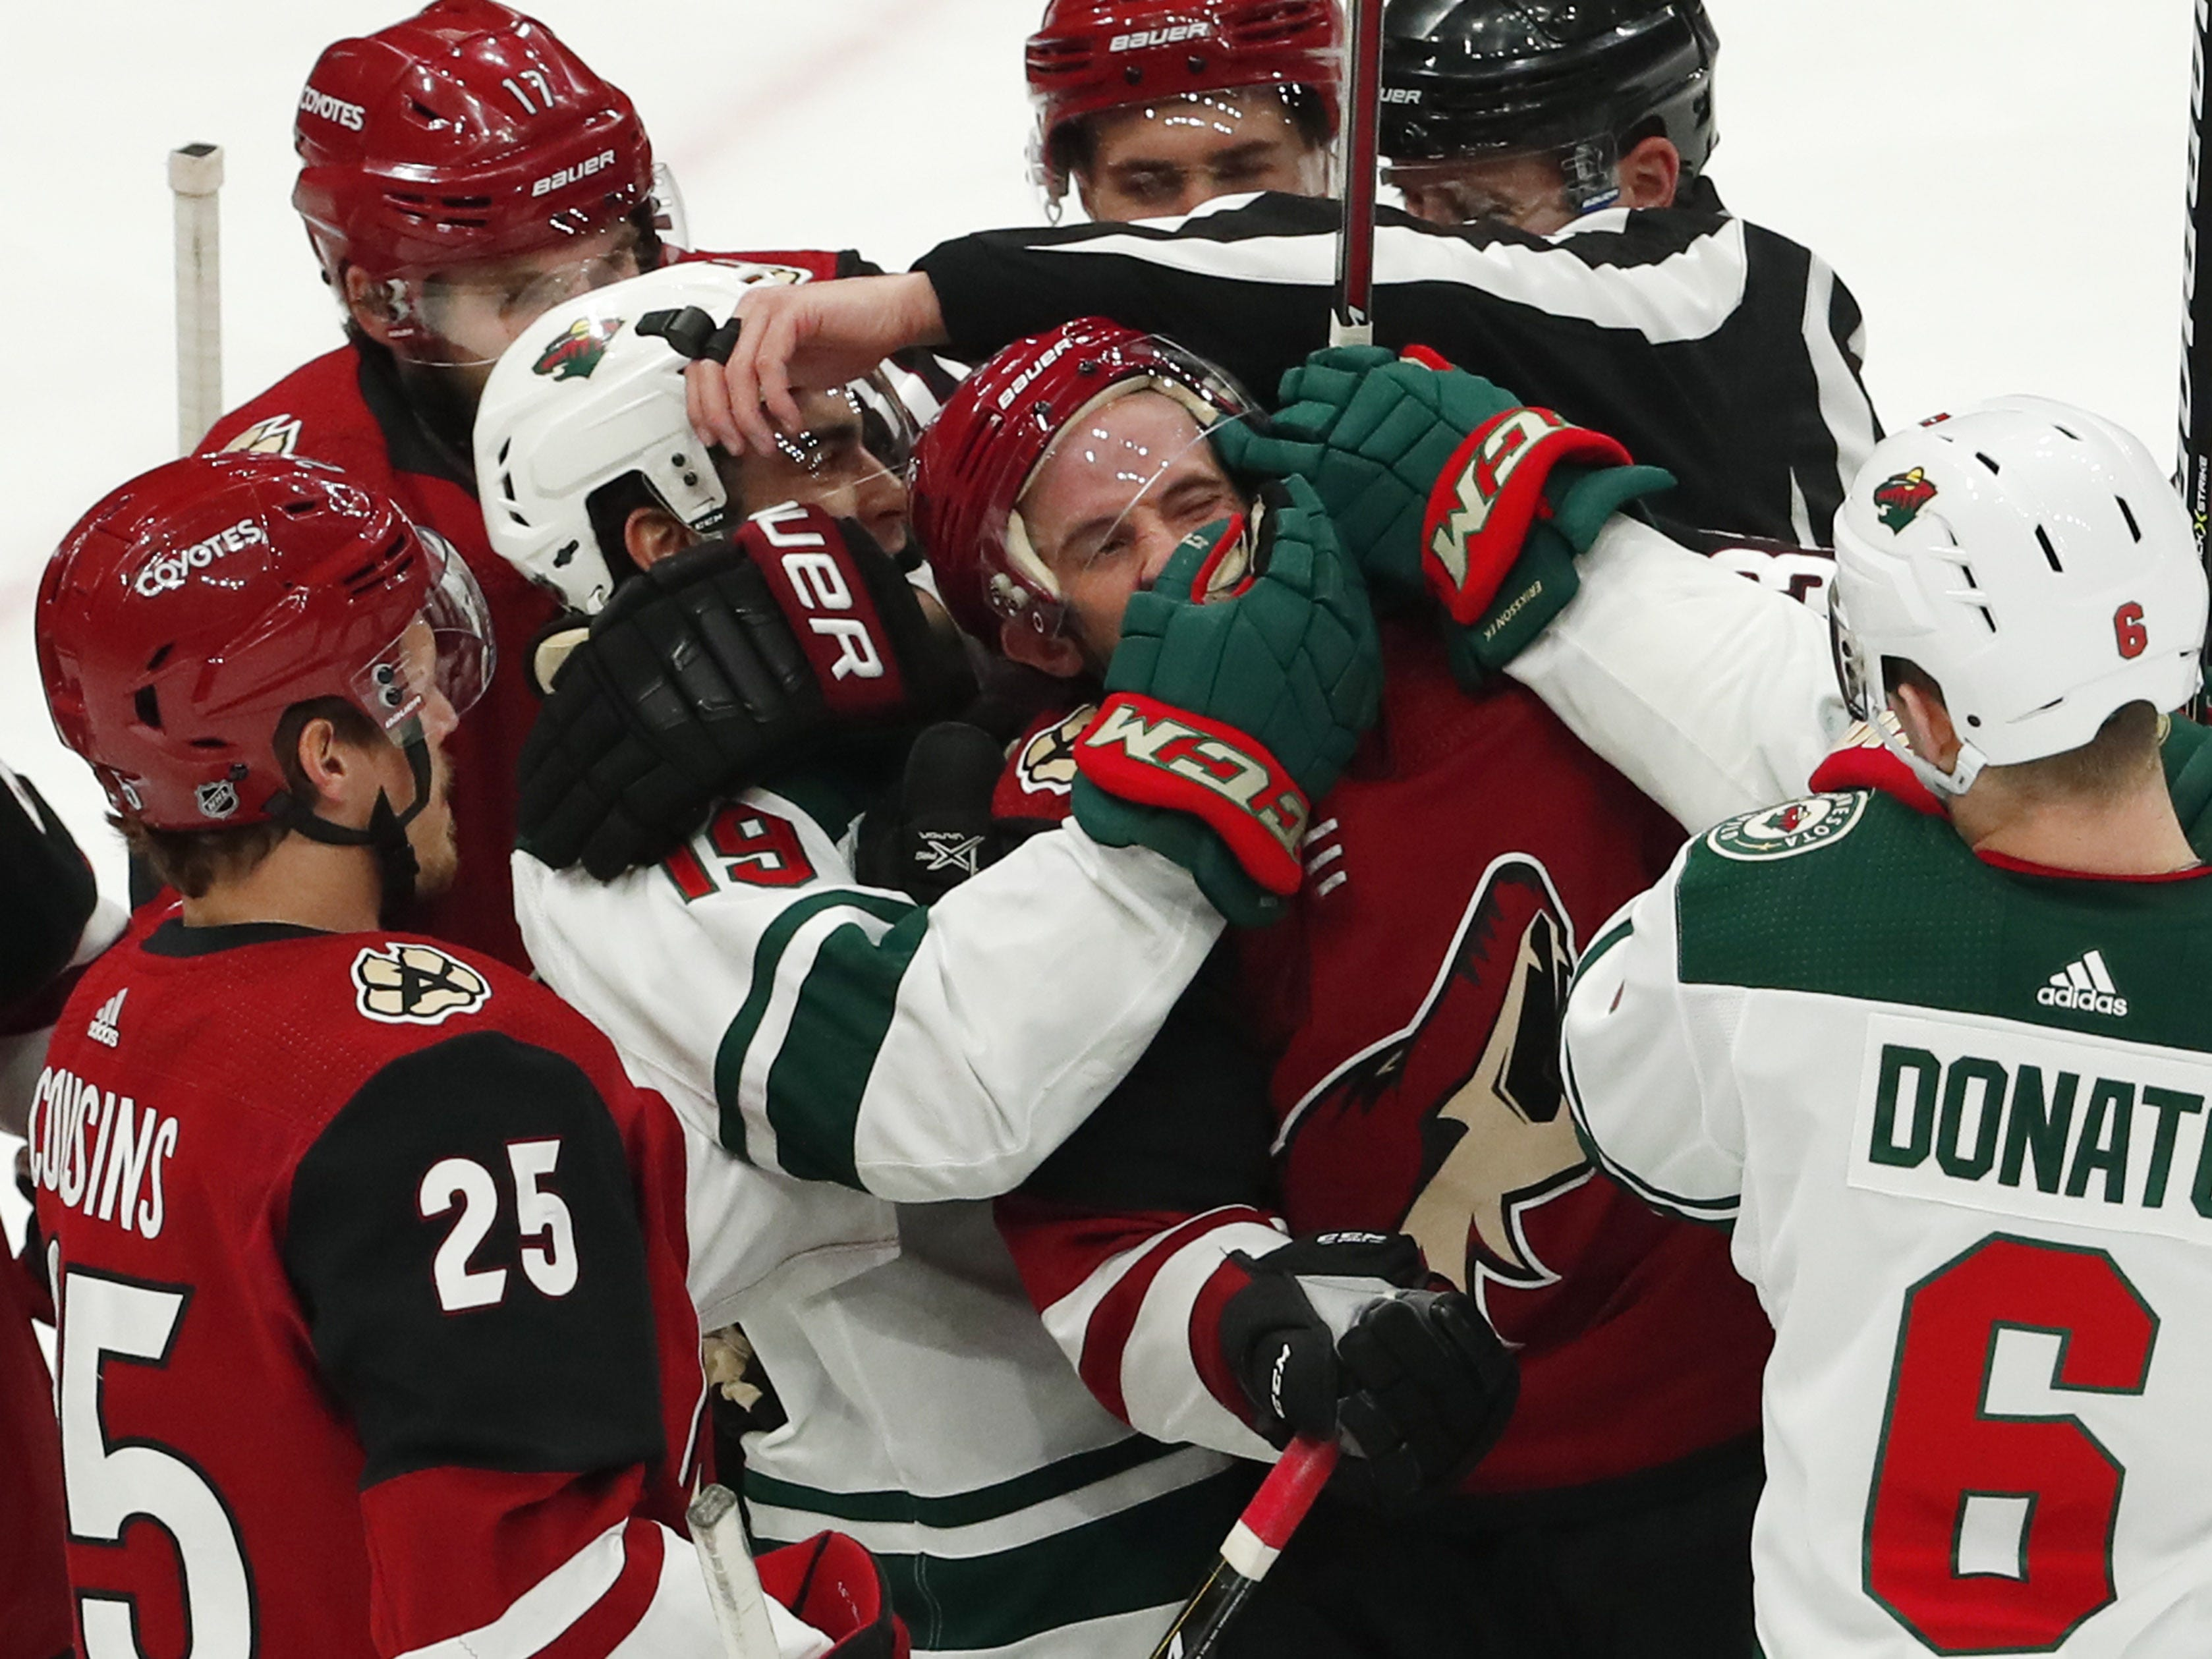 Arizona Coyotes defenseman Alex Goligoski (33) is held by Minnesota Wild center Luke Kunin (19) during the first period in Glendale March 31, 2019.